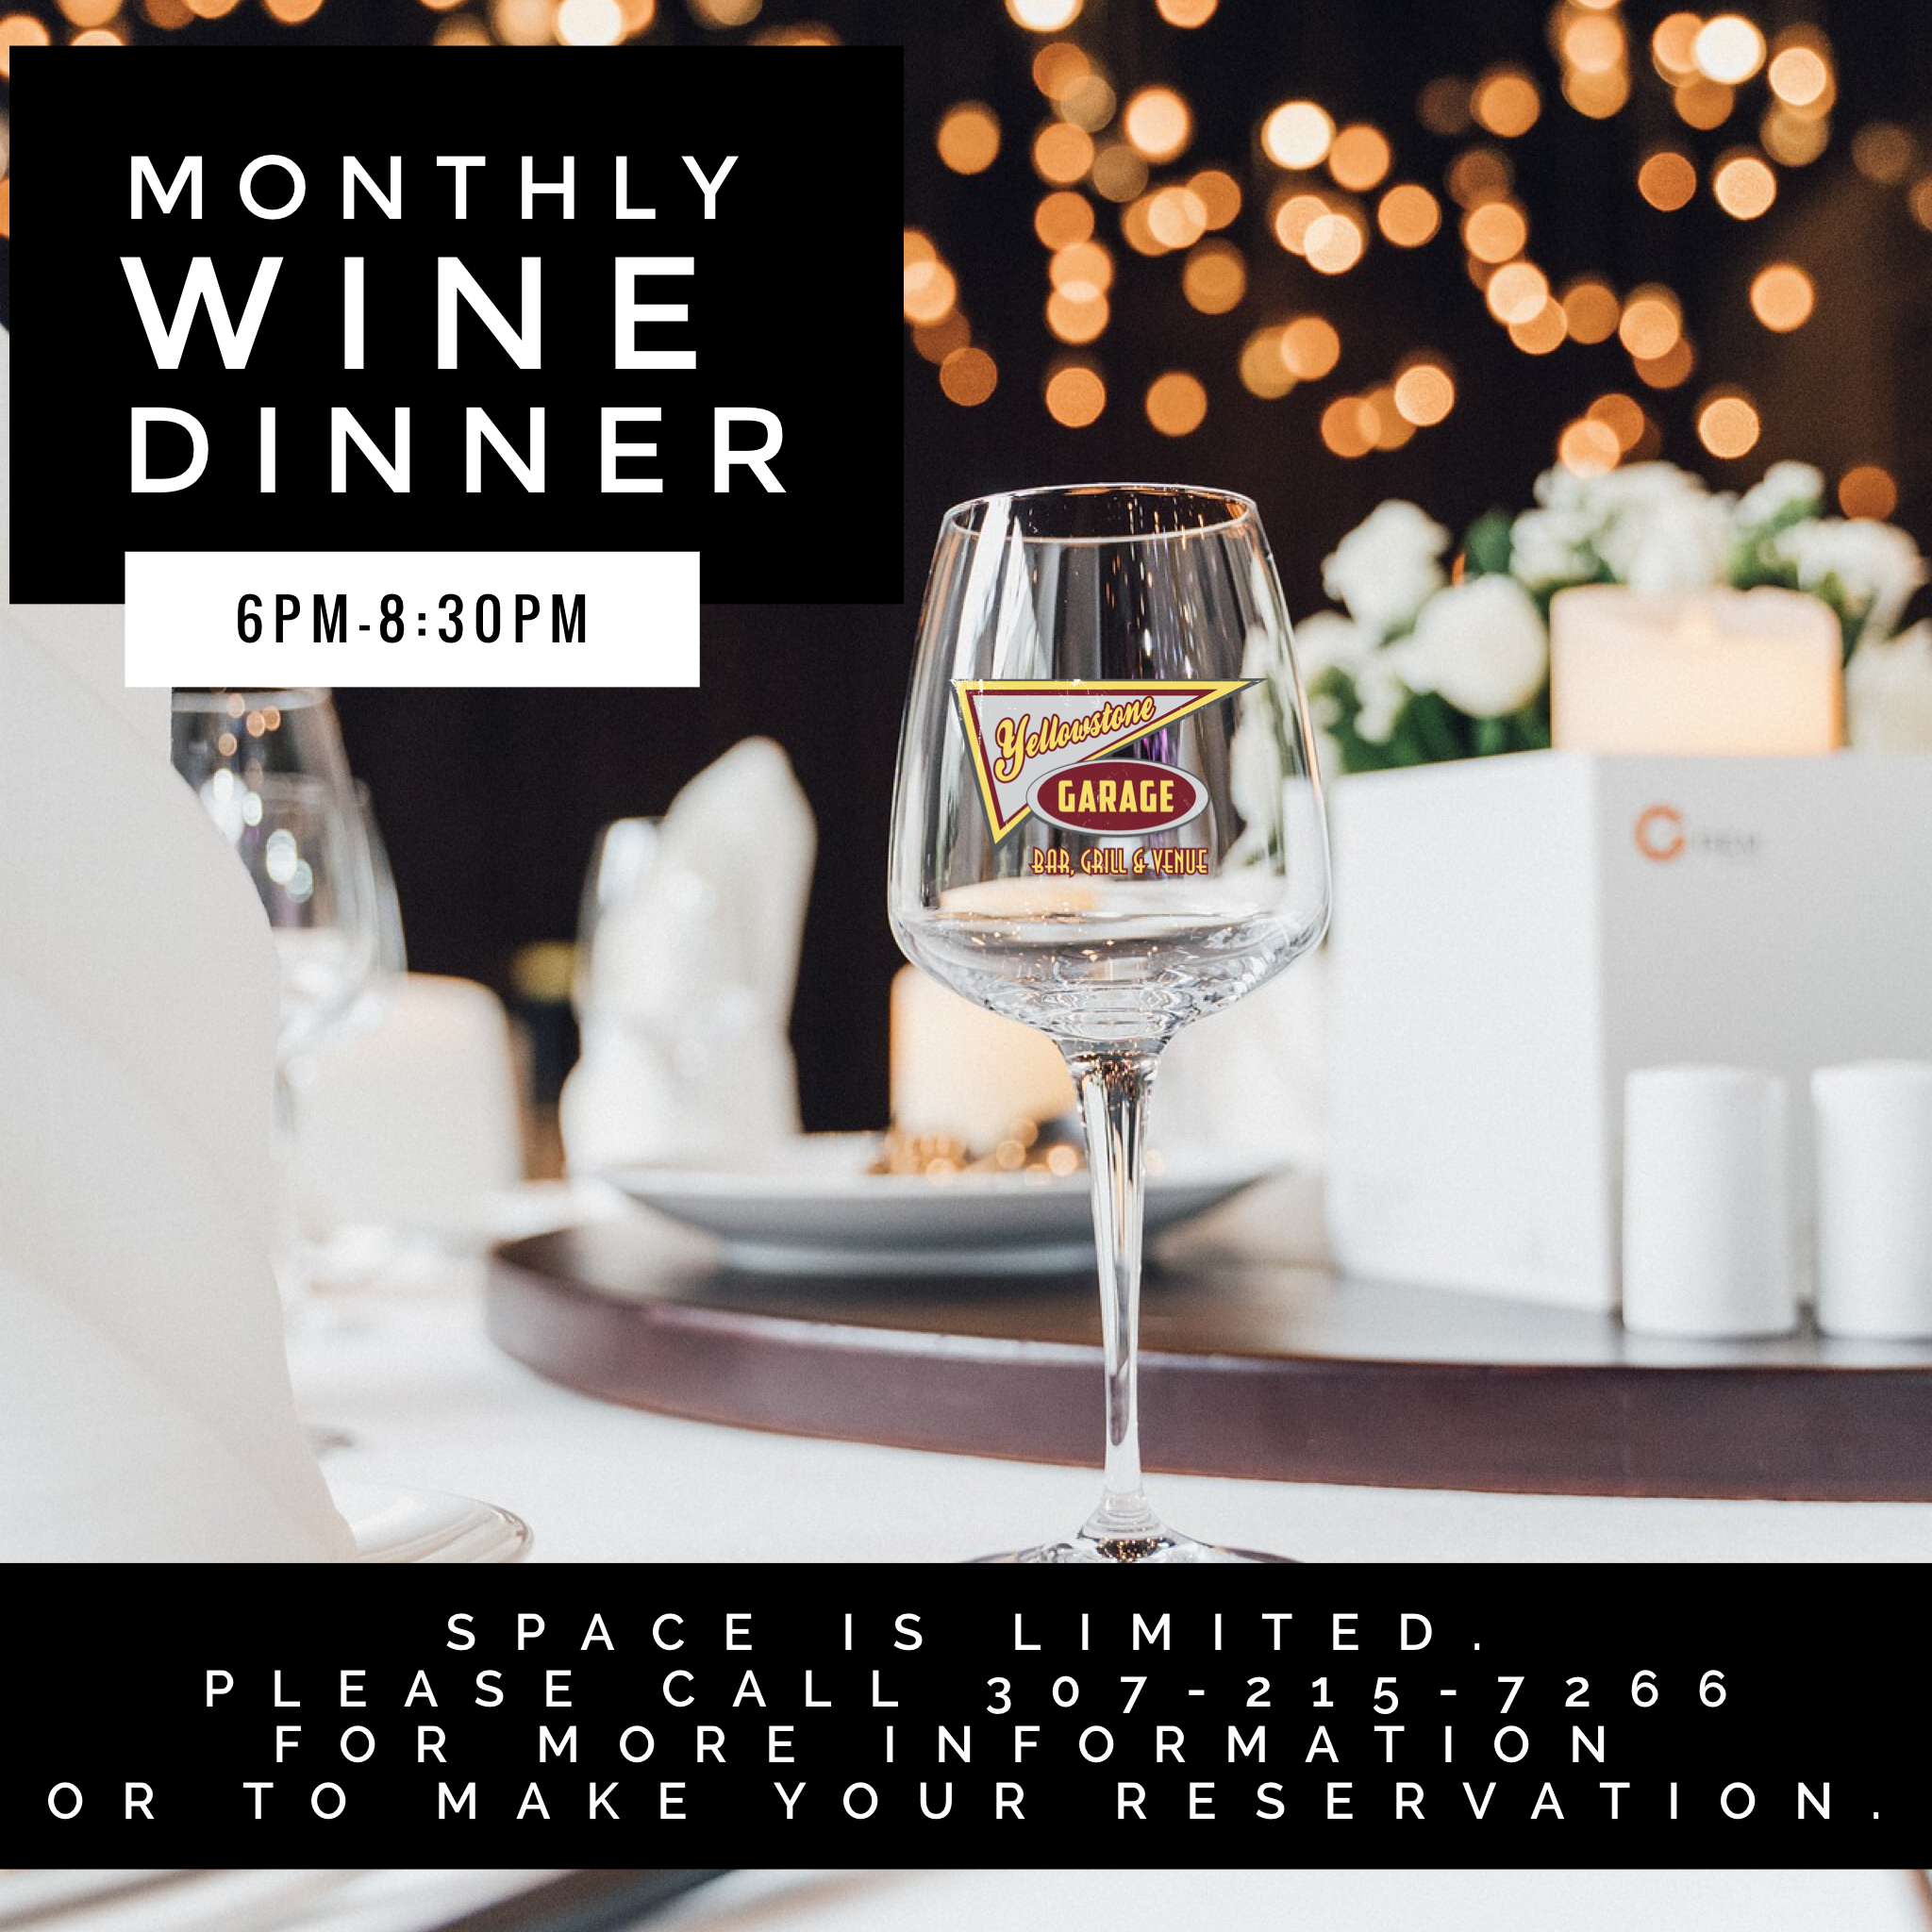 Monthly wine dinner. 6pm-8:30pm. Space is limited. Please call 307-215-7266 for more information or to make your reservation